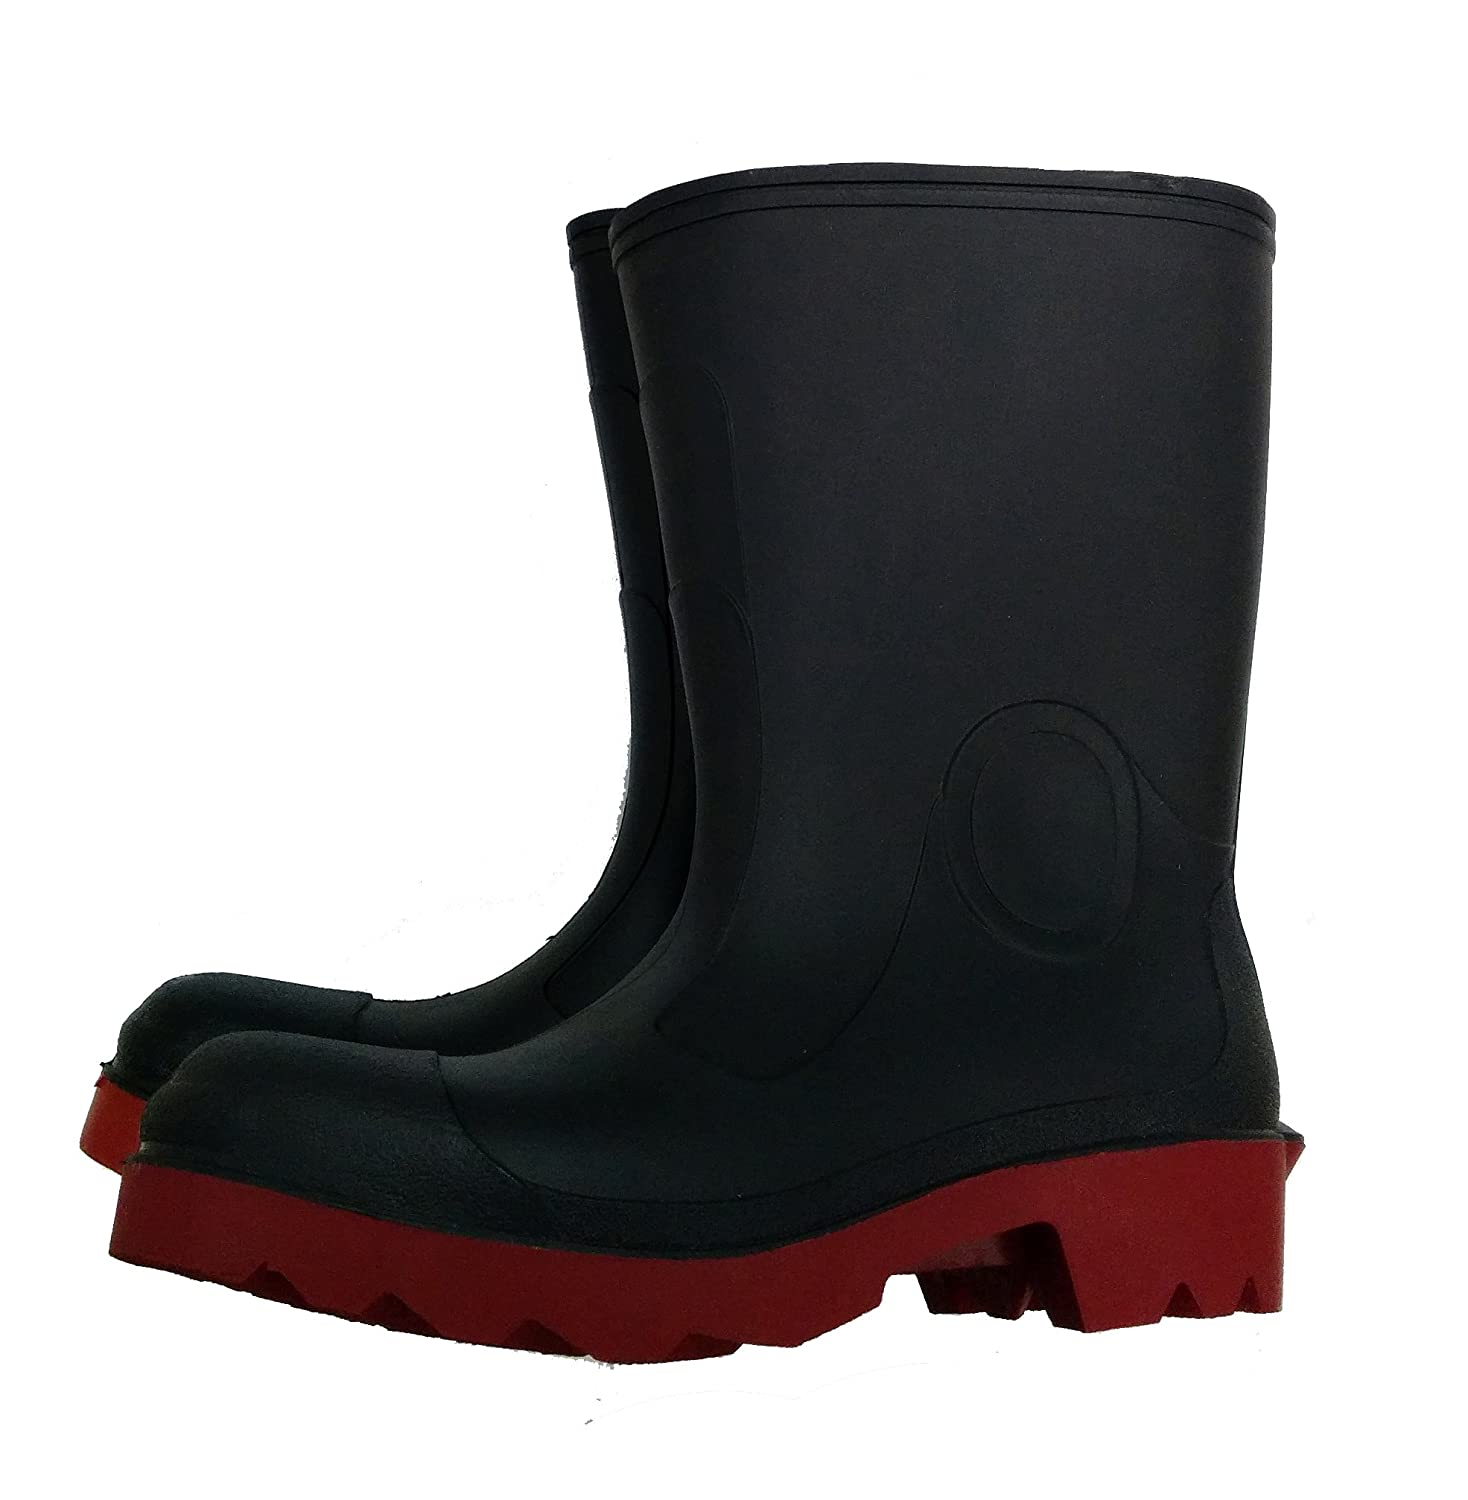 Herco 12' Steel Toe Rubber Rain Work Boots (Black/Red) - Men's Size 6 Hecht Rubber Corporation